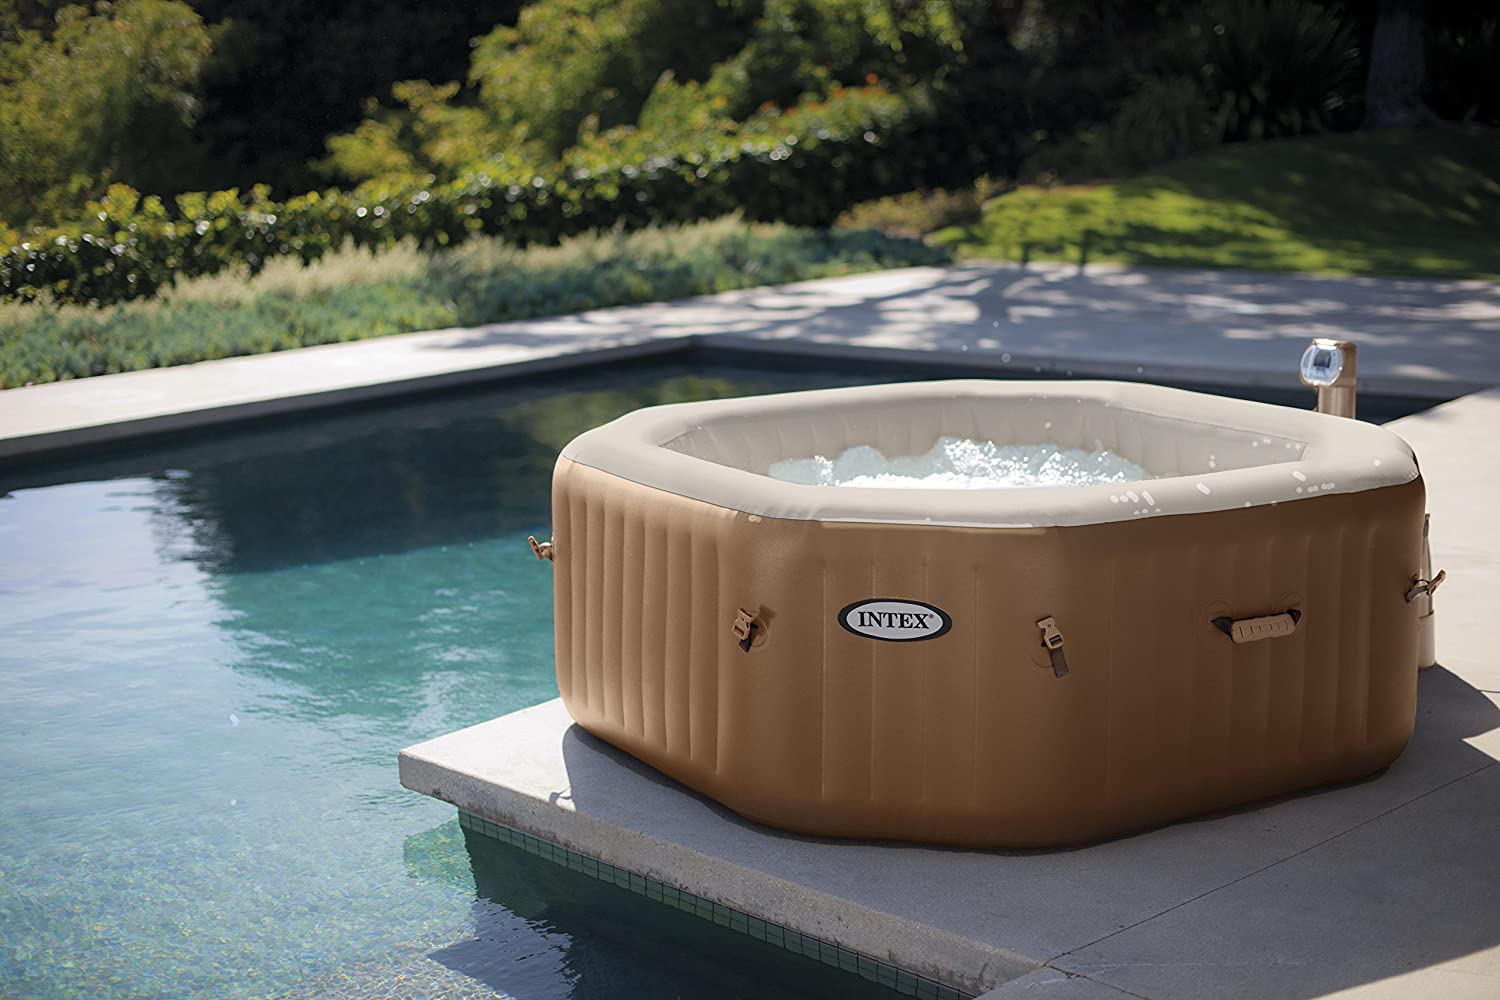 This blow up jacuzzi by Intex features fiber-tech construction and 120 heated bubble jets.